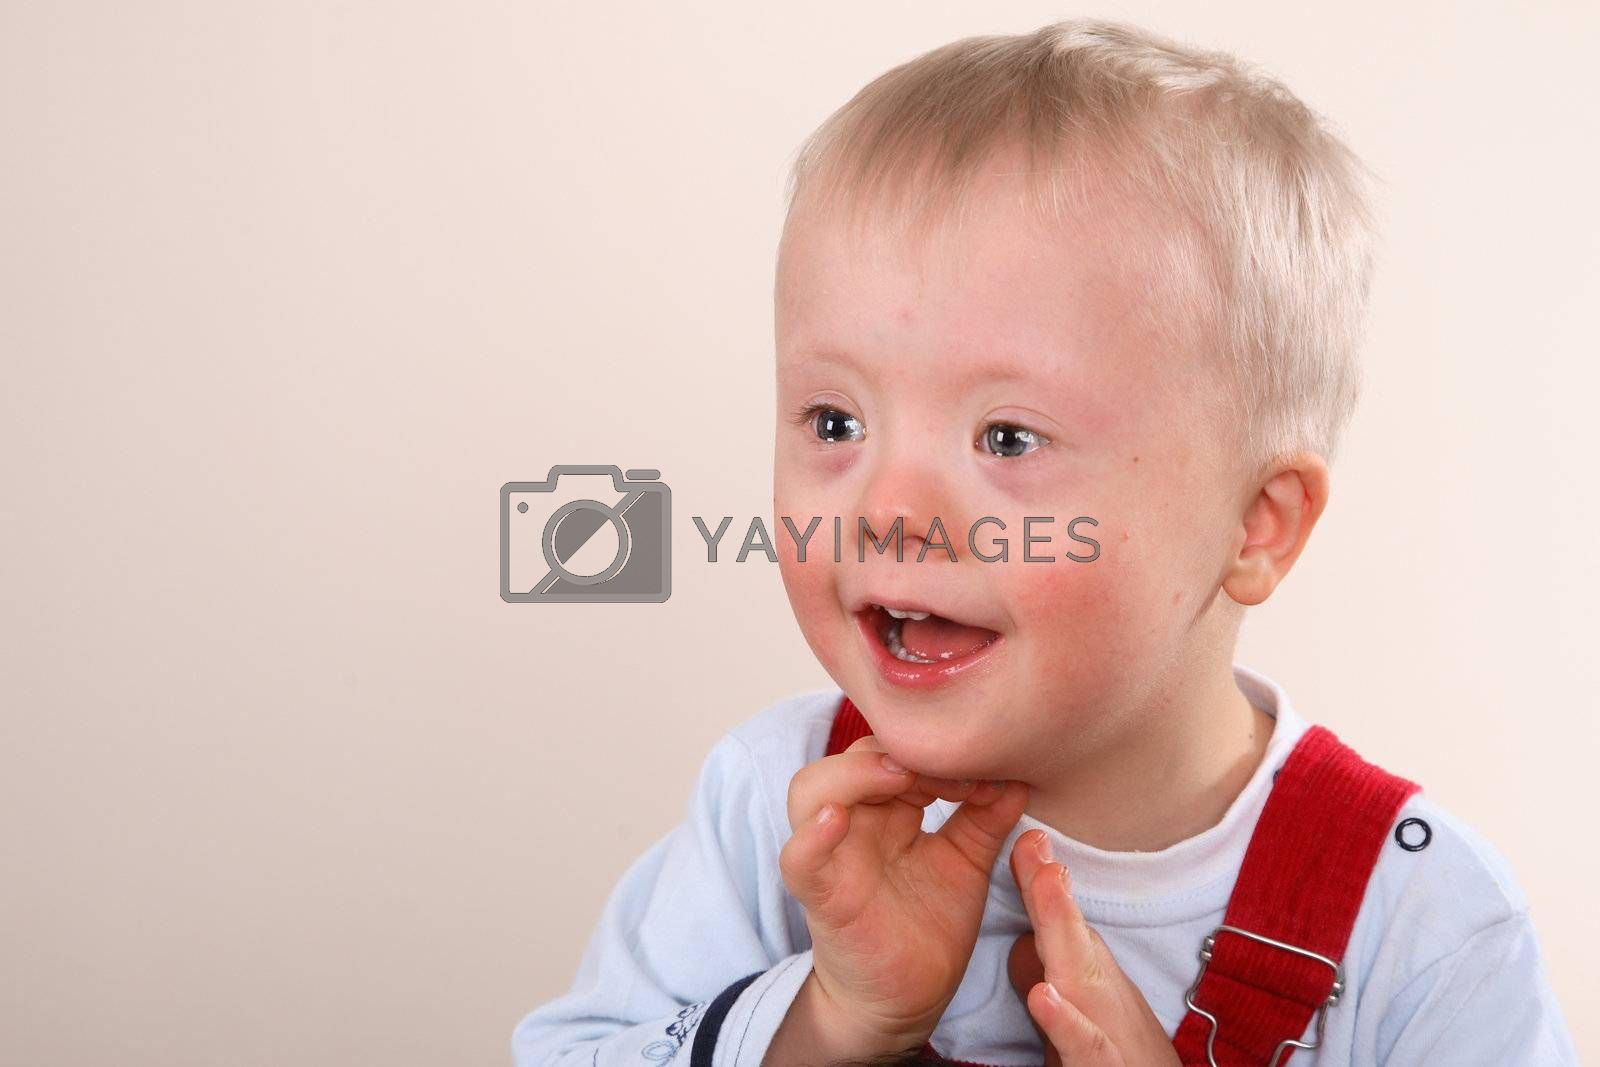 Young Boy with special needs, possibly Downs Syndrome